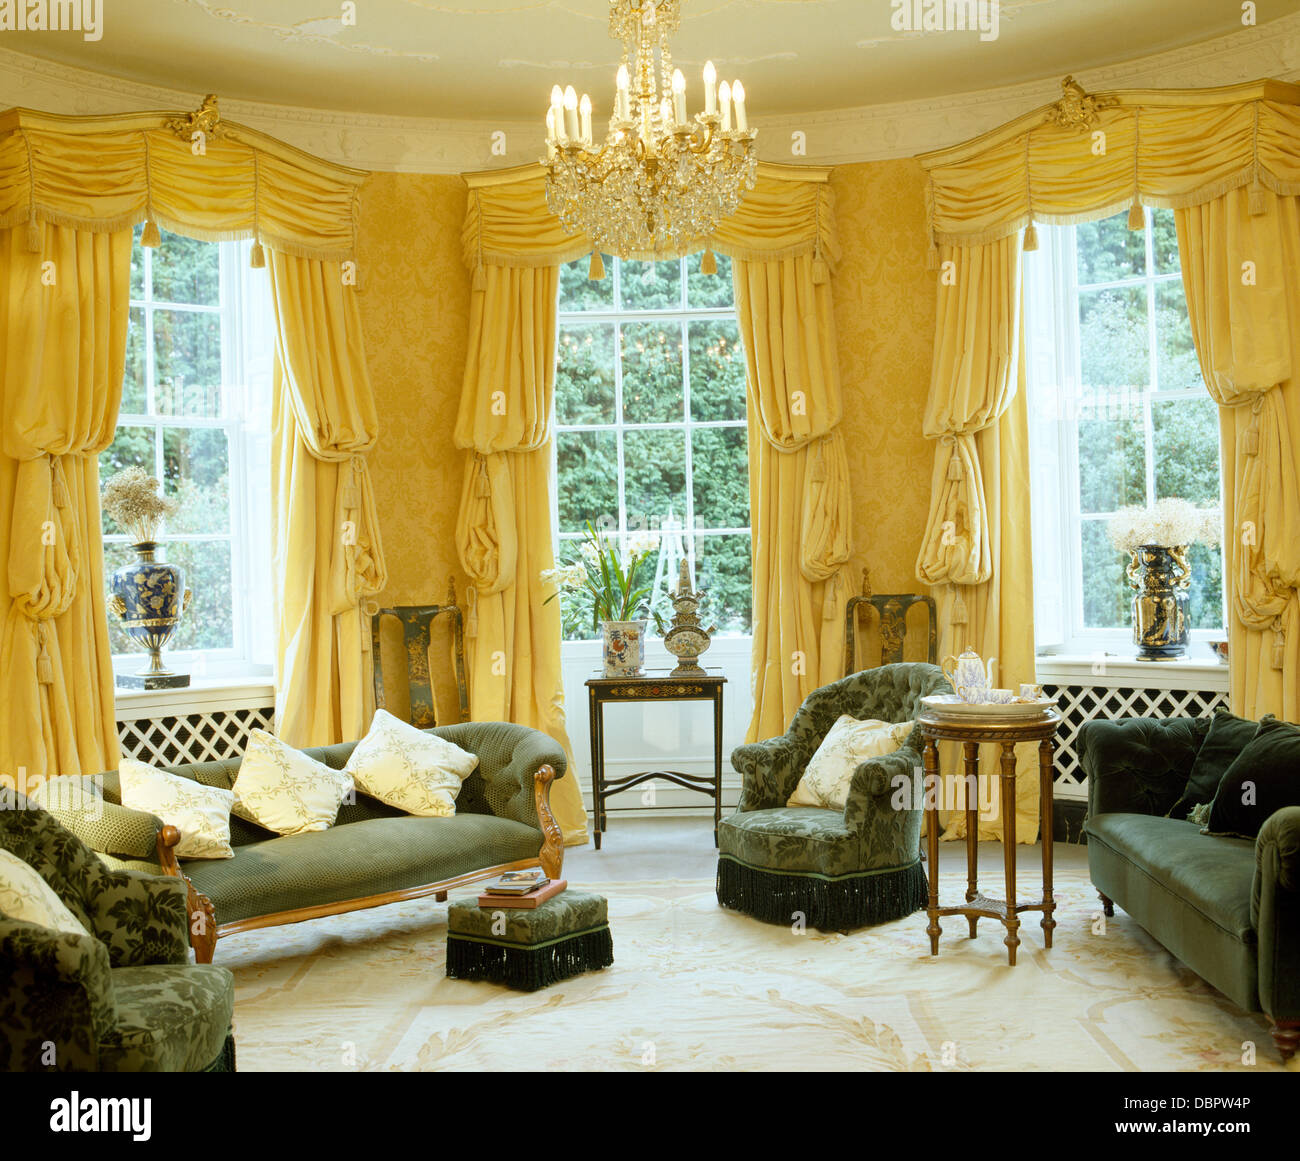 Yellow Swagged And Tailed Silk Curtains On Tall Windows In